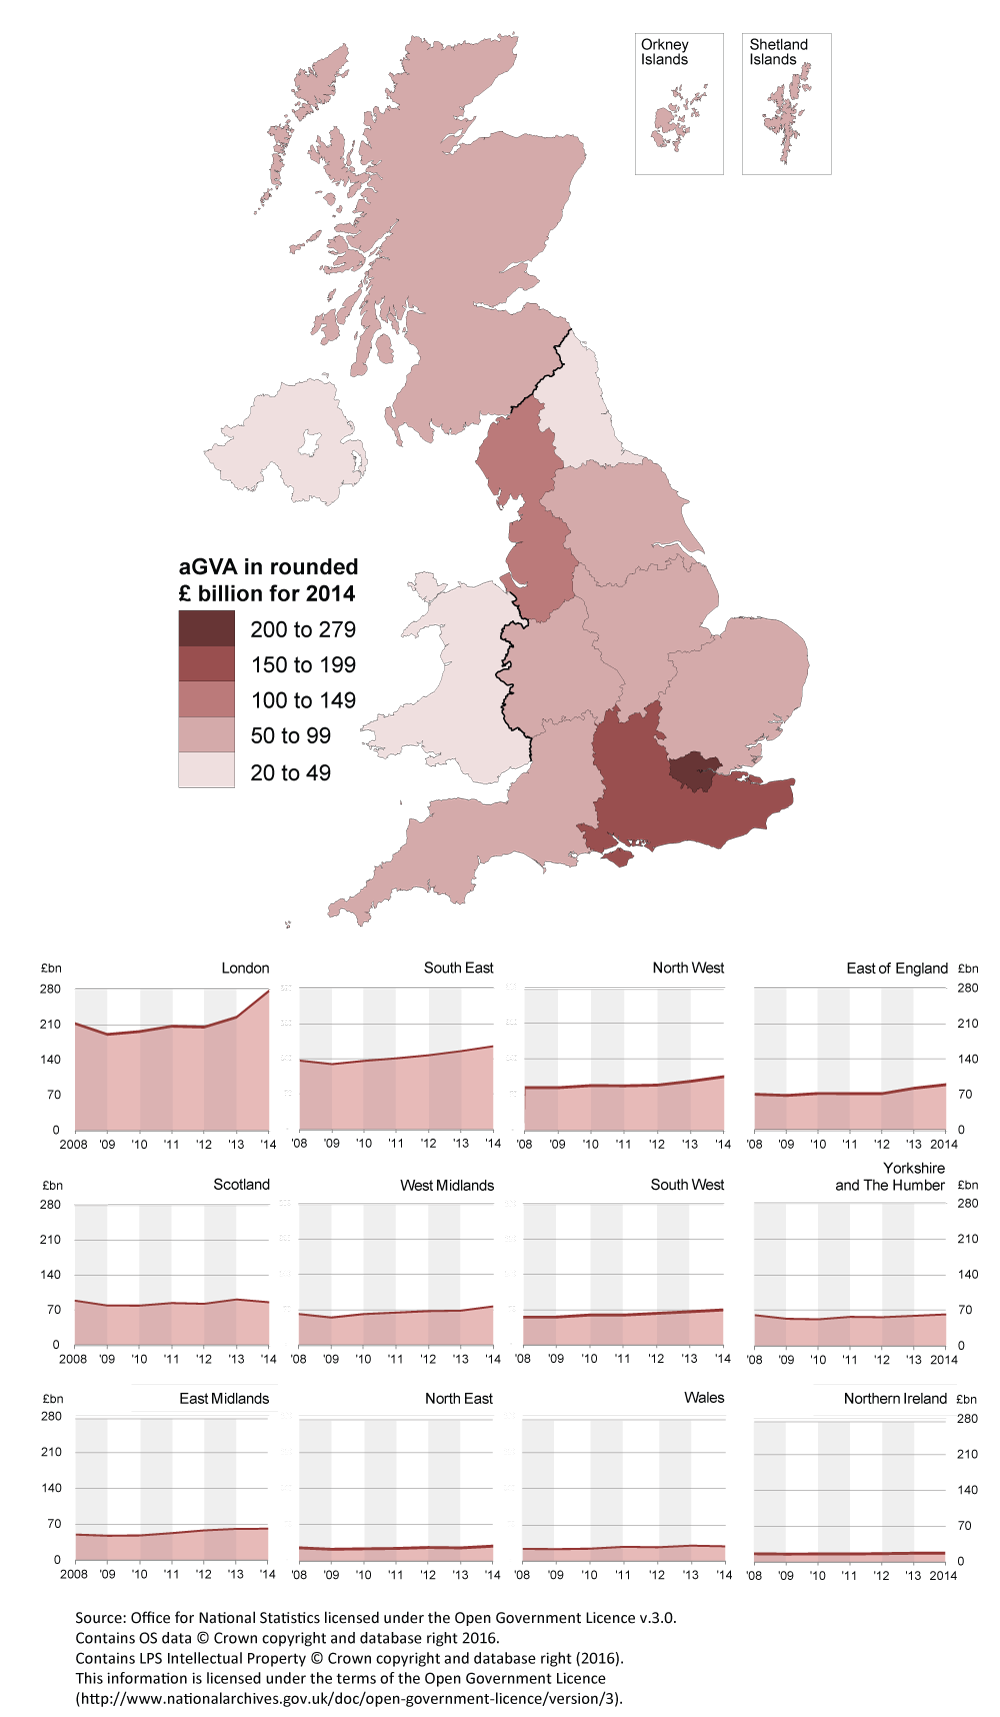 London is the largest region in terms of aGVA contribution in 2014.